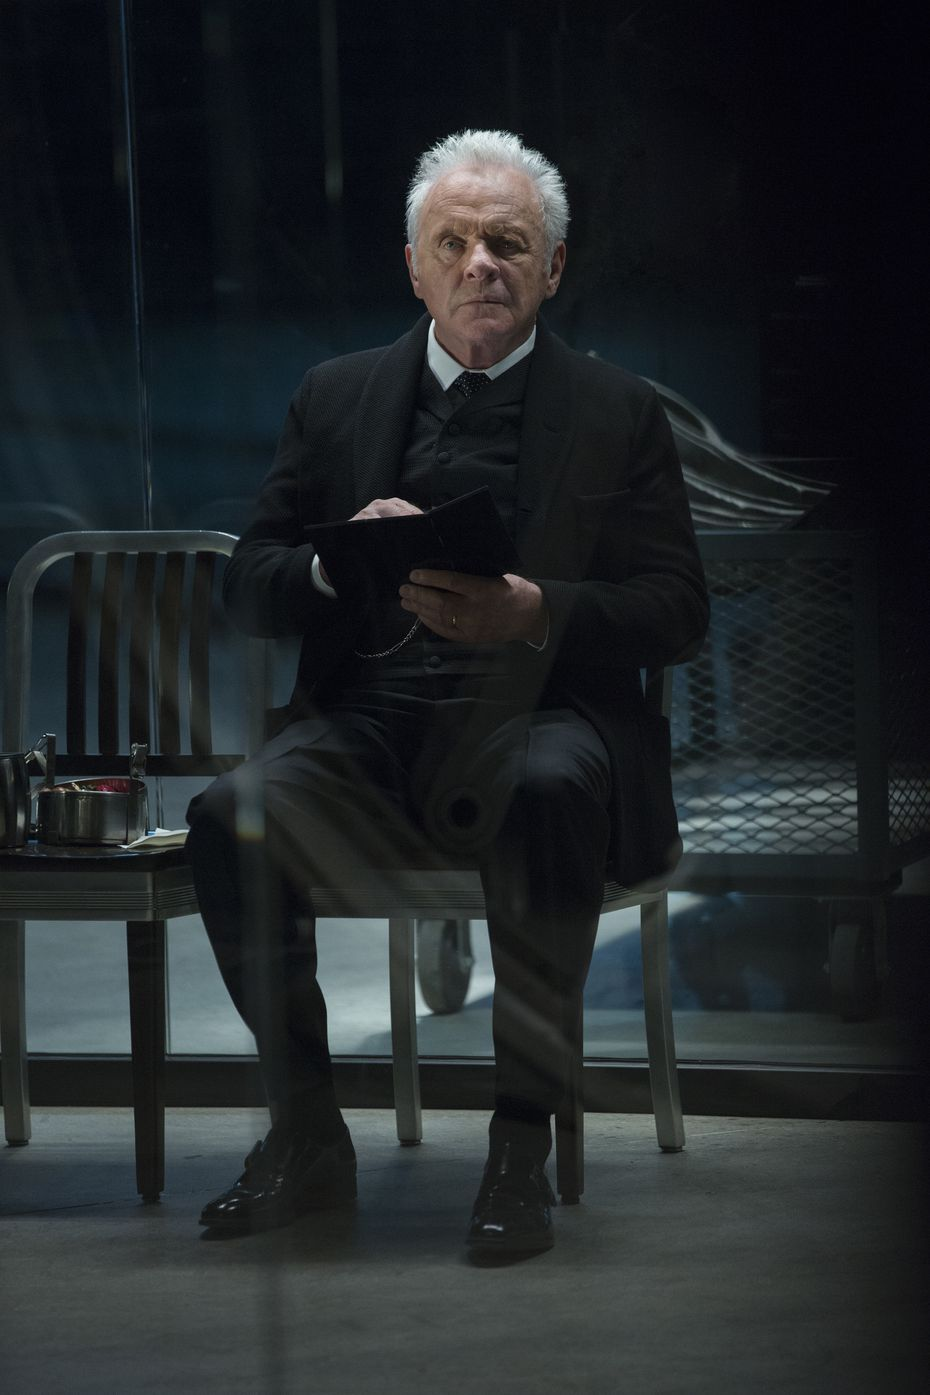 Anthony Hopkins as Dr. Robert Ford (or, for our purposes, God)